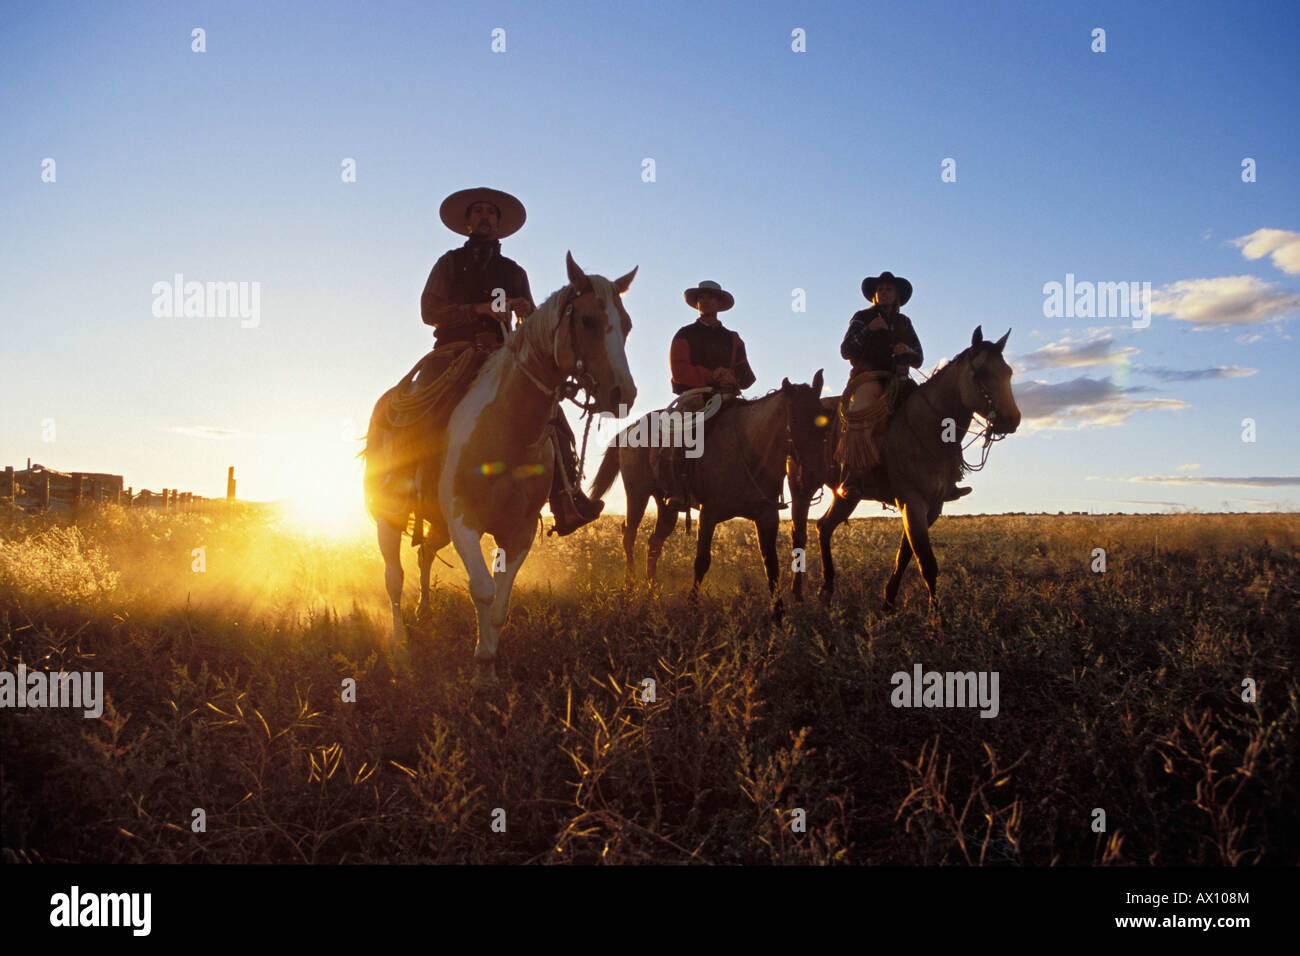 Cowboys horseriding at sunset, Oregon, USA - Stock Image